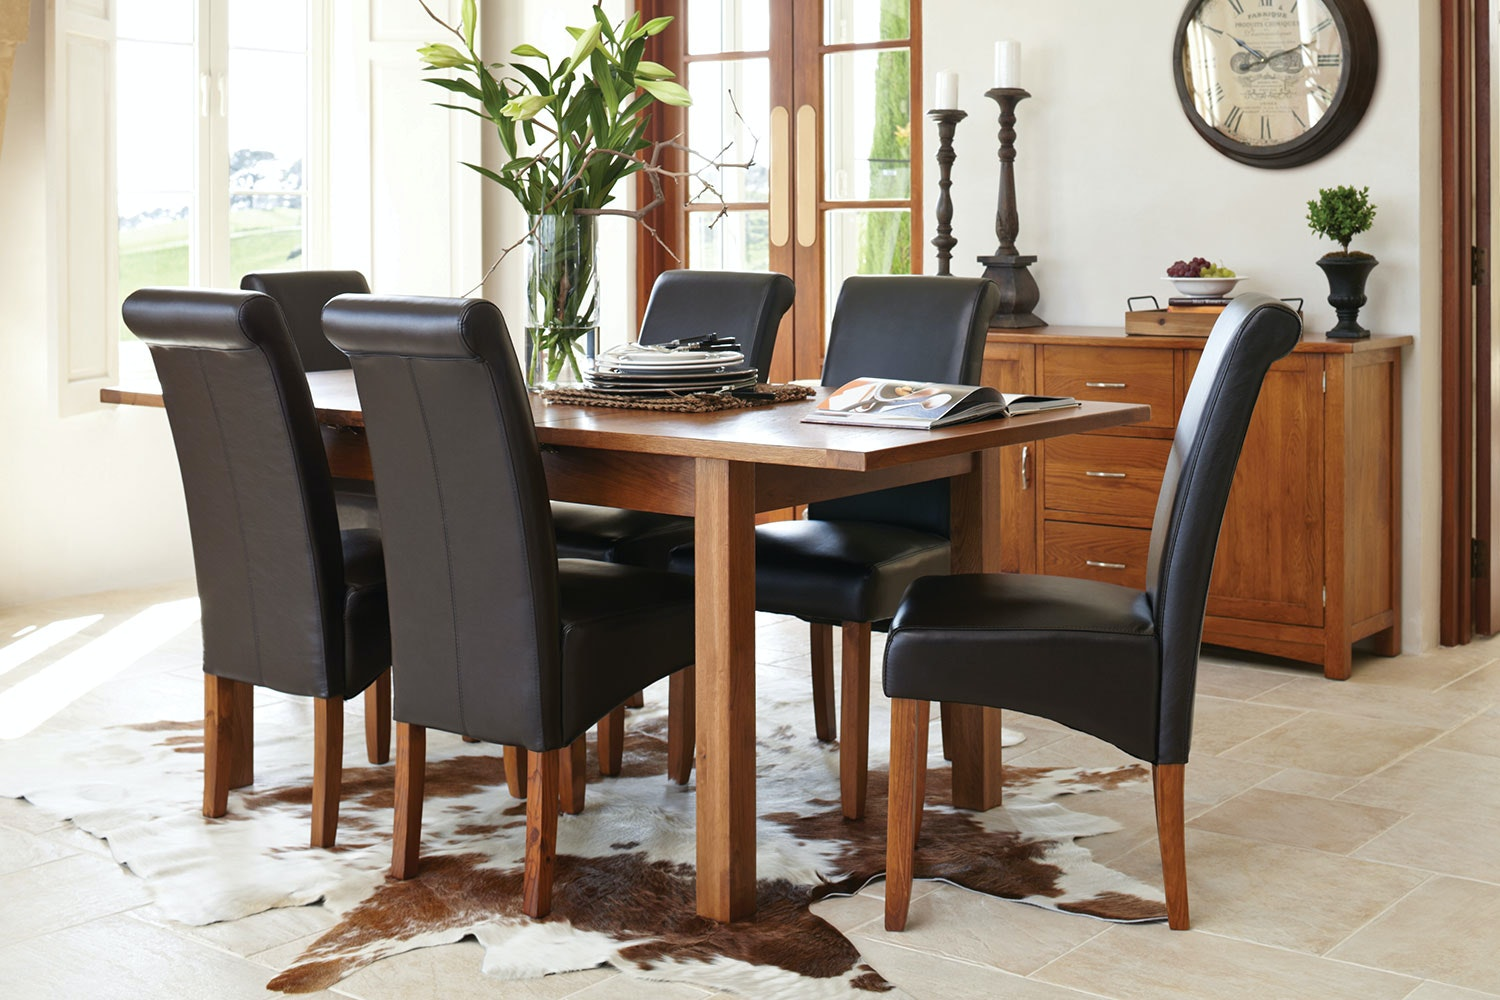 Trafalgar Aged Rimu 7 Piece Extension Dining Suite by Coastwood Furniture